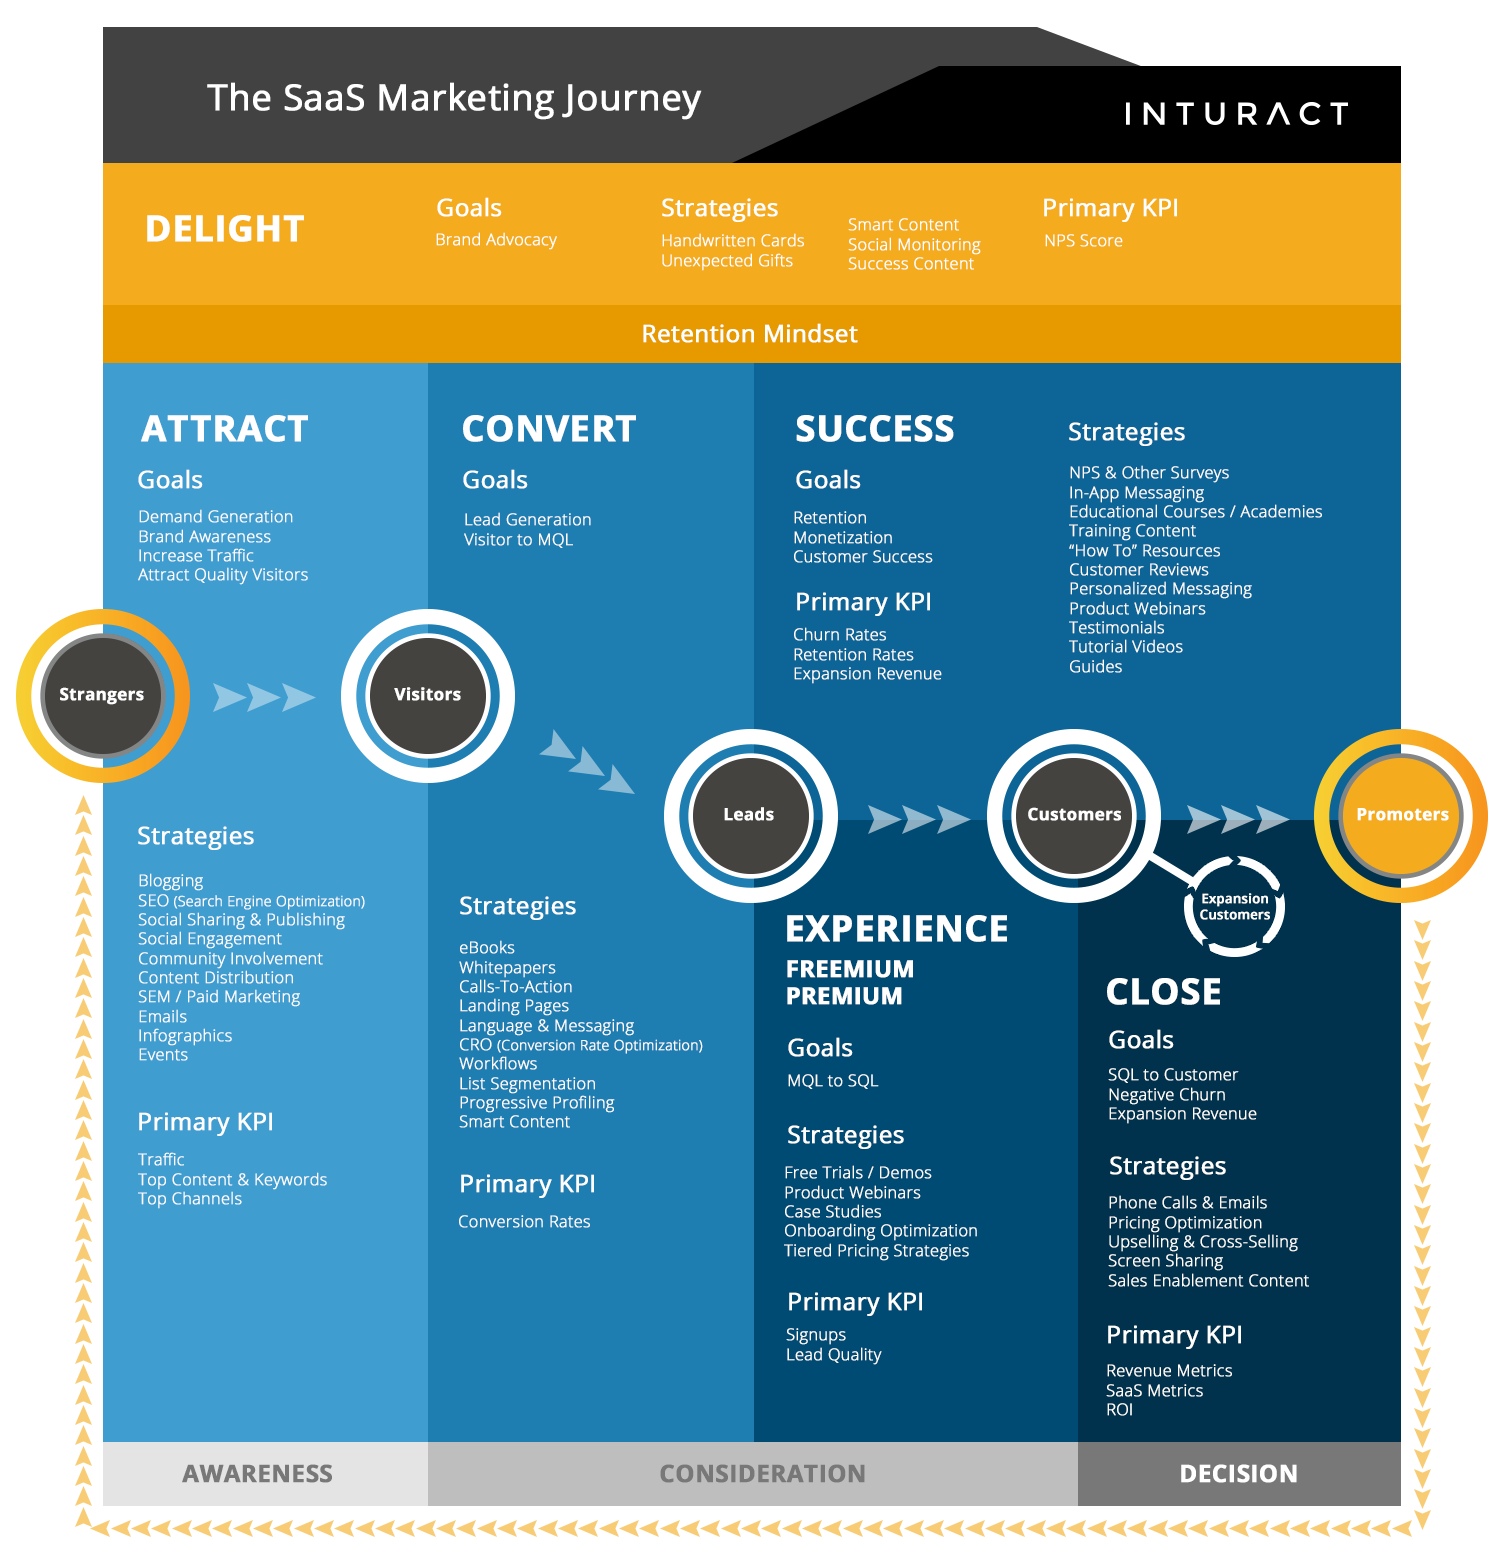 The-SaaS-Marketing-Journey-1.png